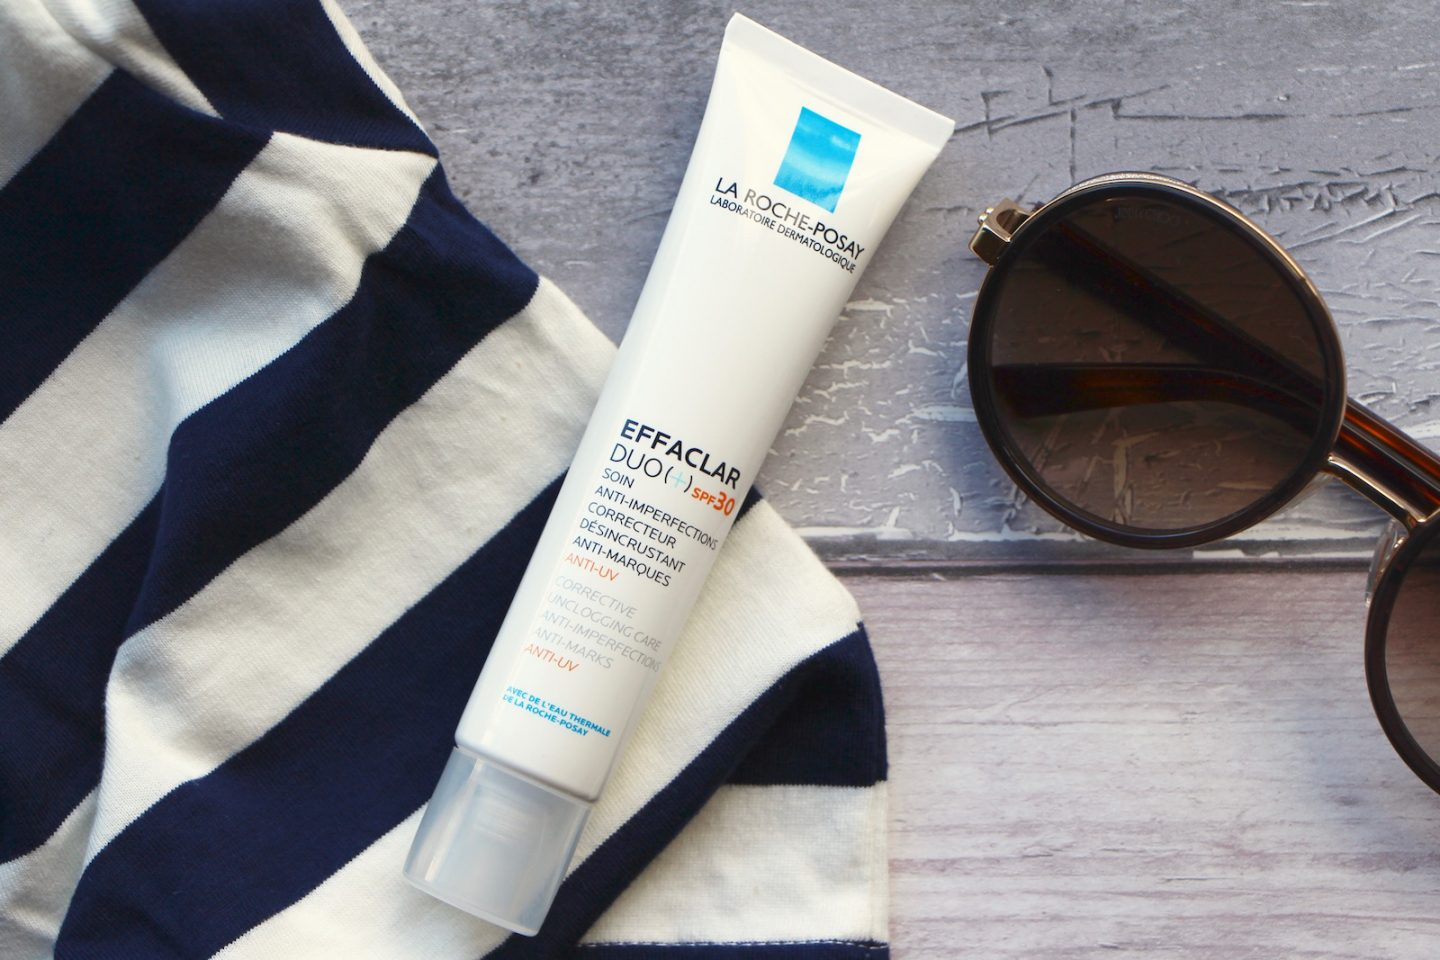 La Roche-Posay Effaclar Duo+ SPF30 Review